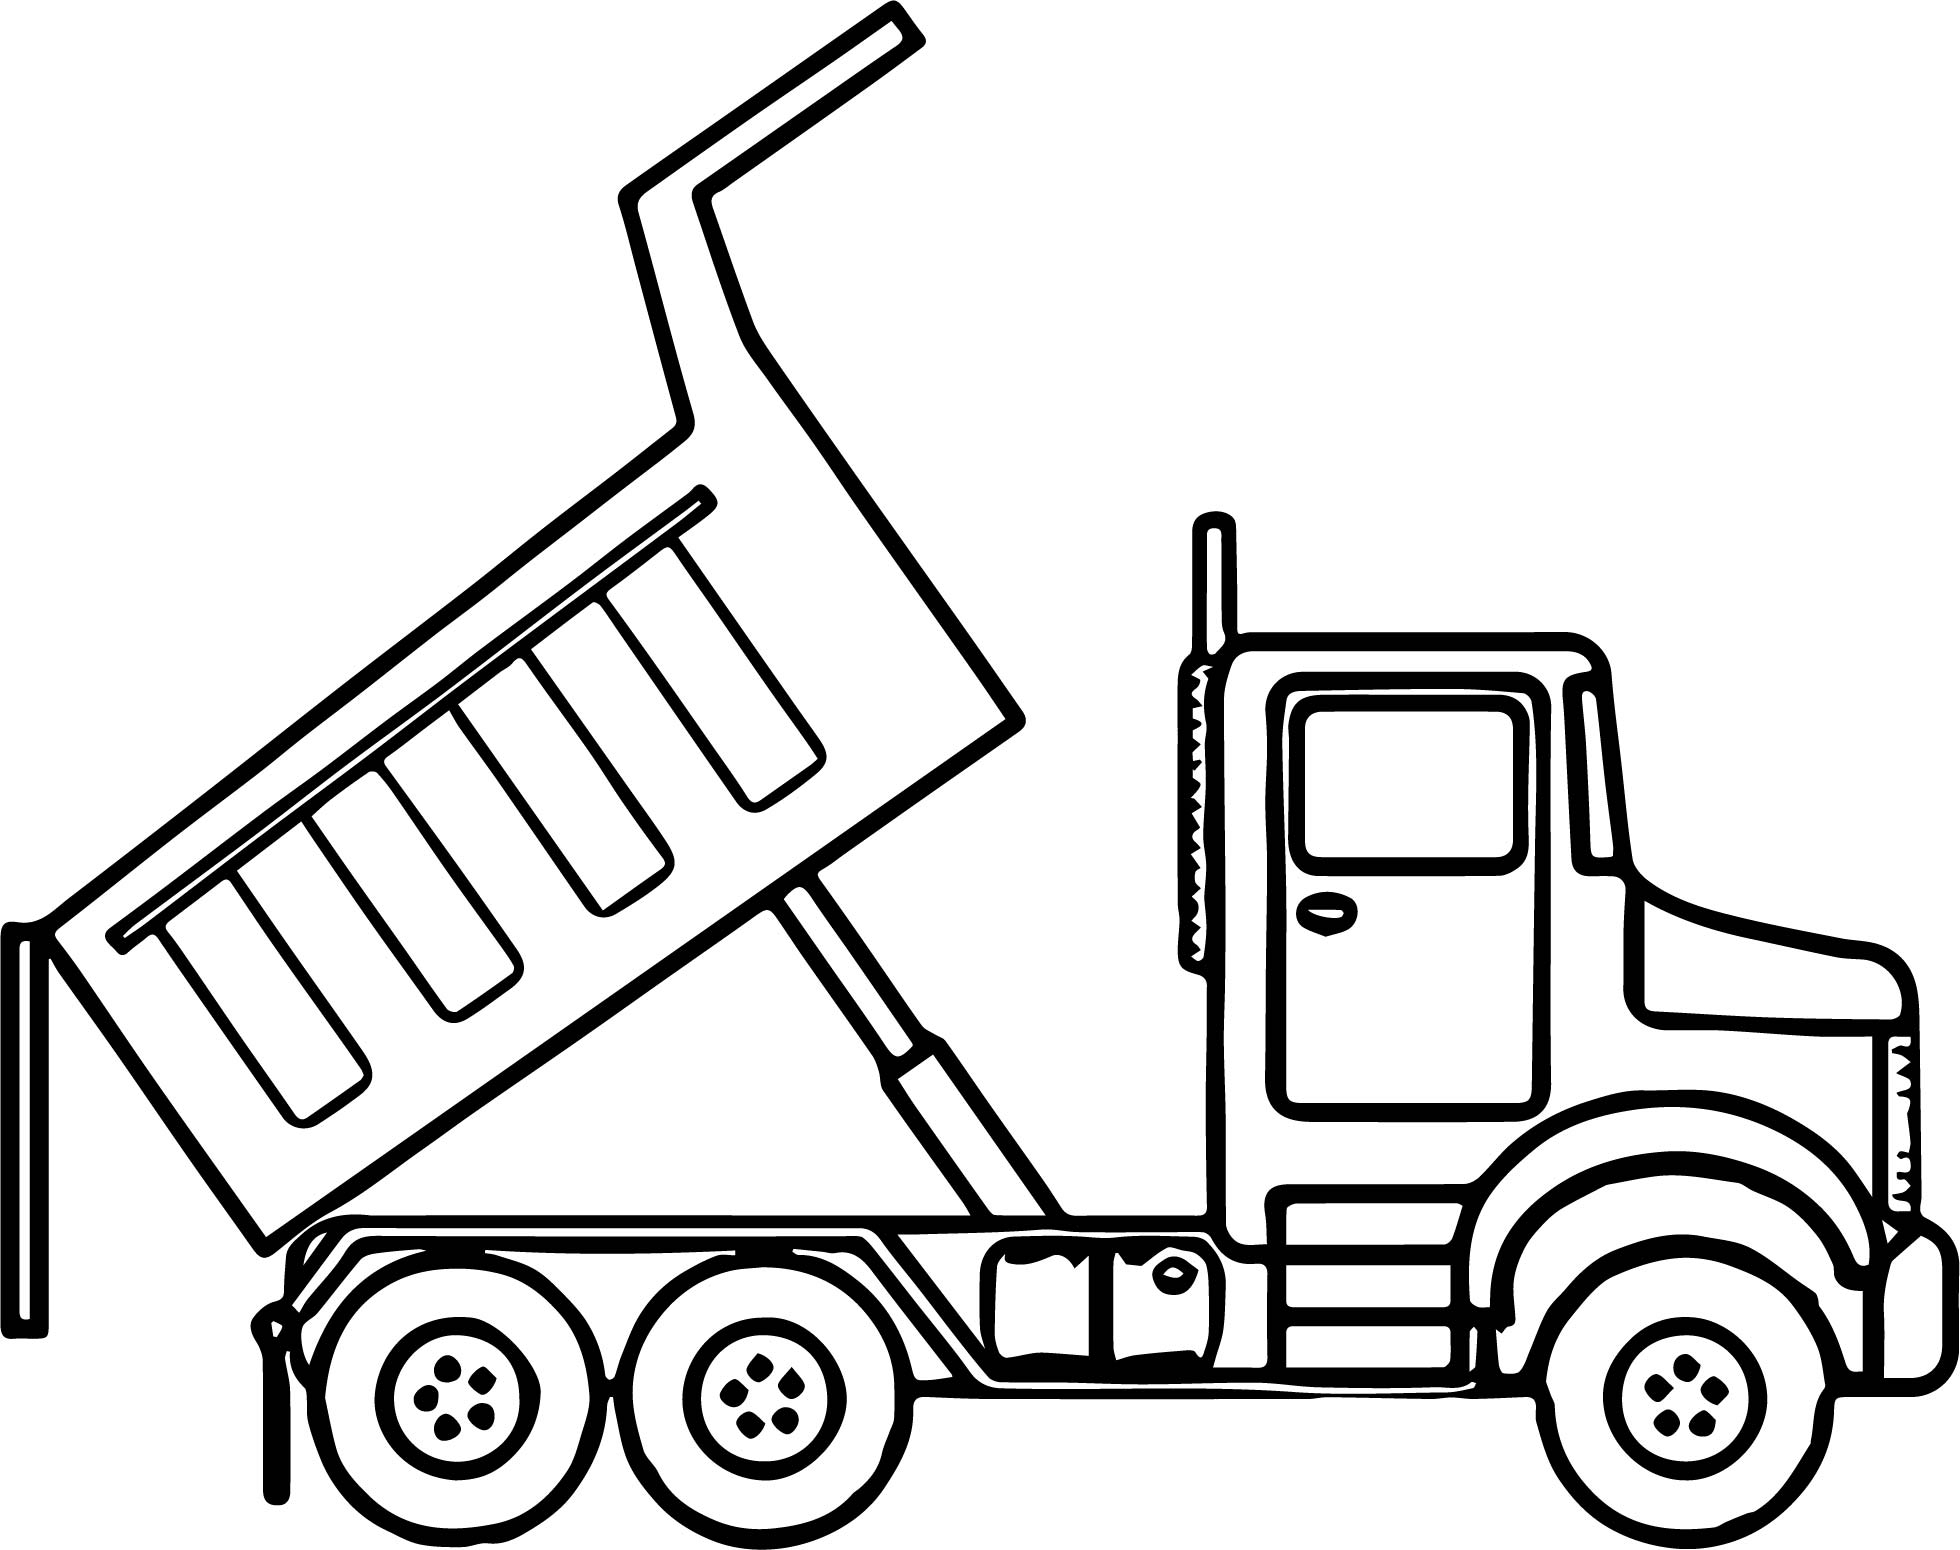 coloring pages garbage truck garbage truck coloring pages sketch coloring page garbage truck pages coloring